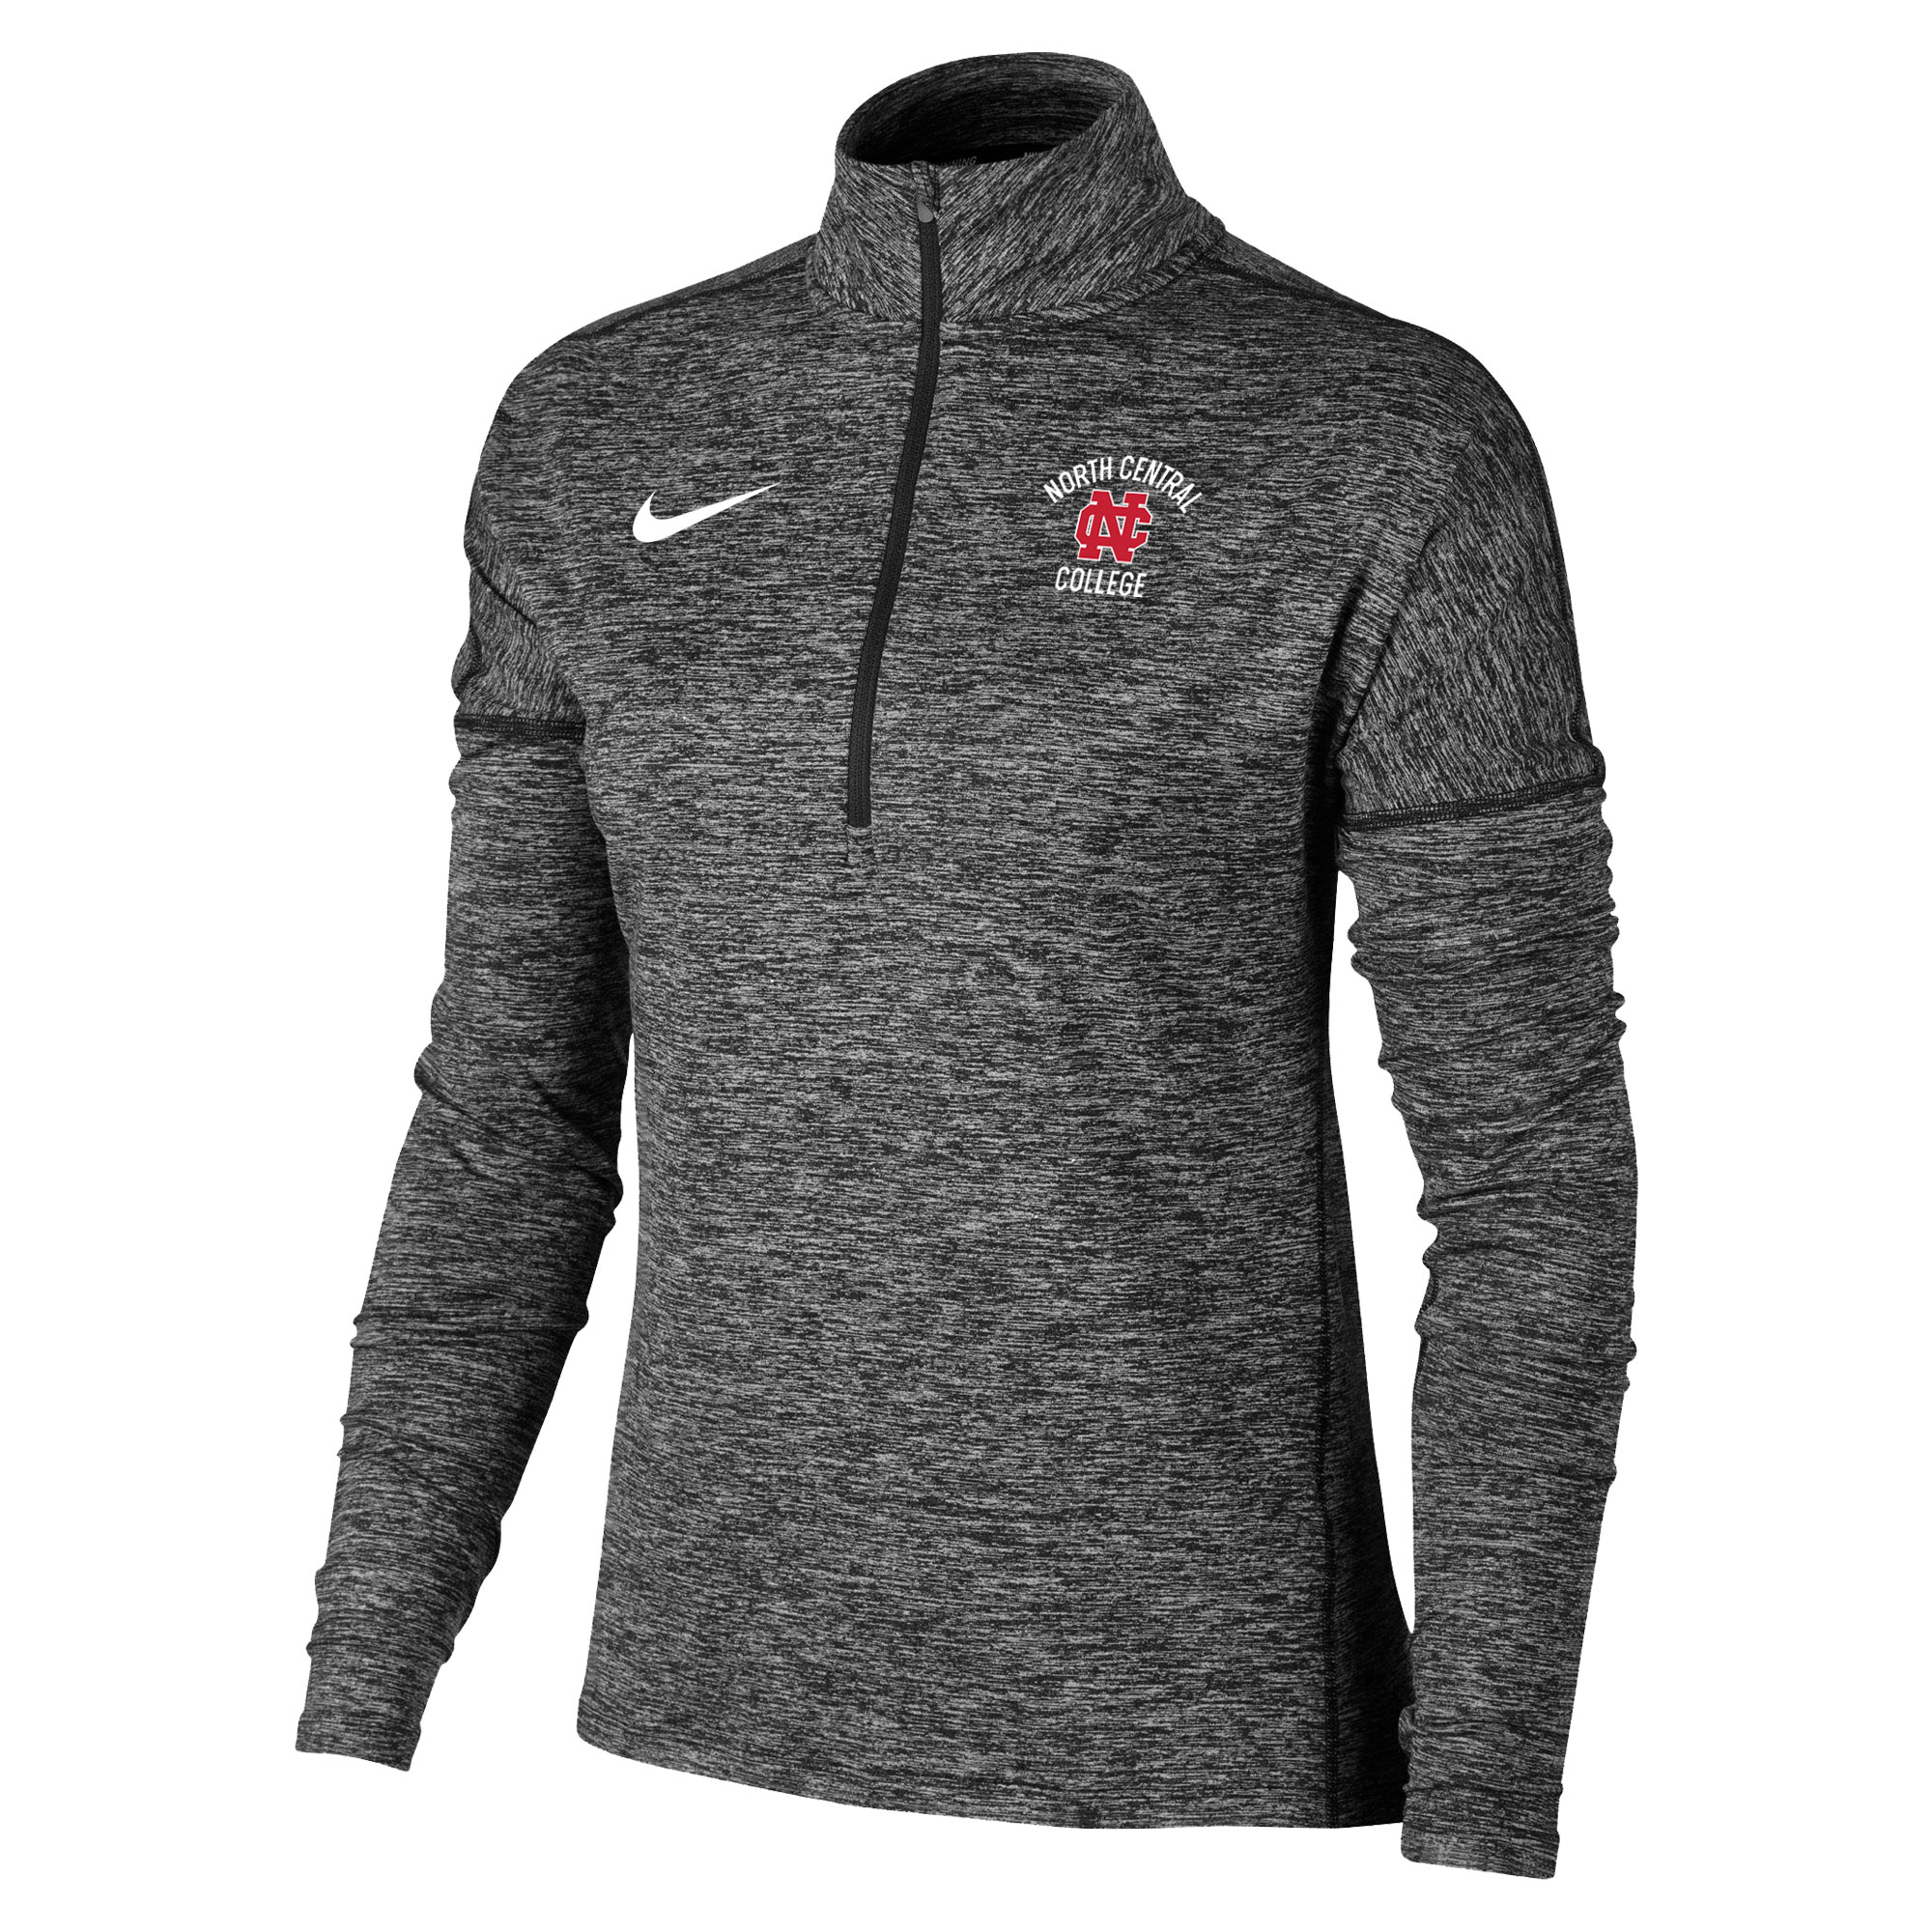 Image for the Women's Nike Dry Element Heather 1/2 Zip product